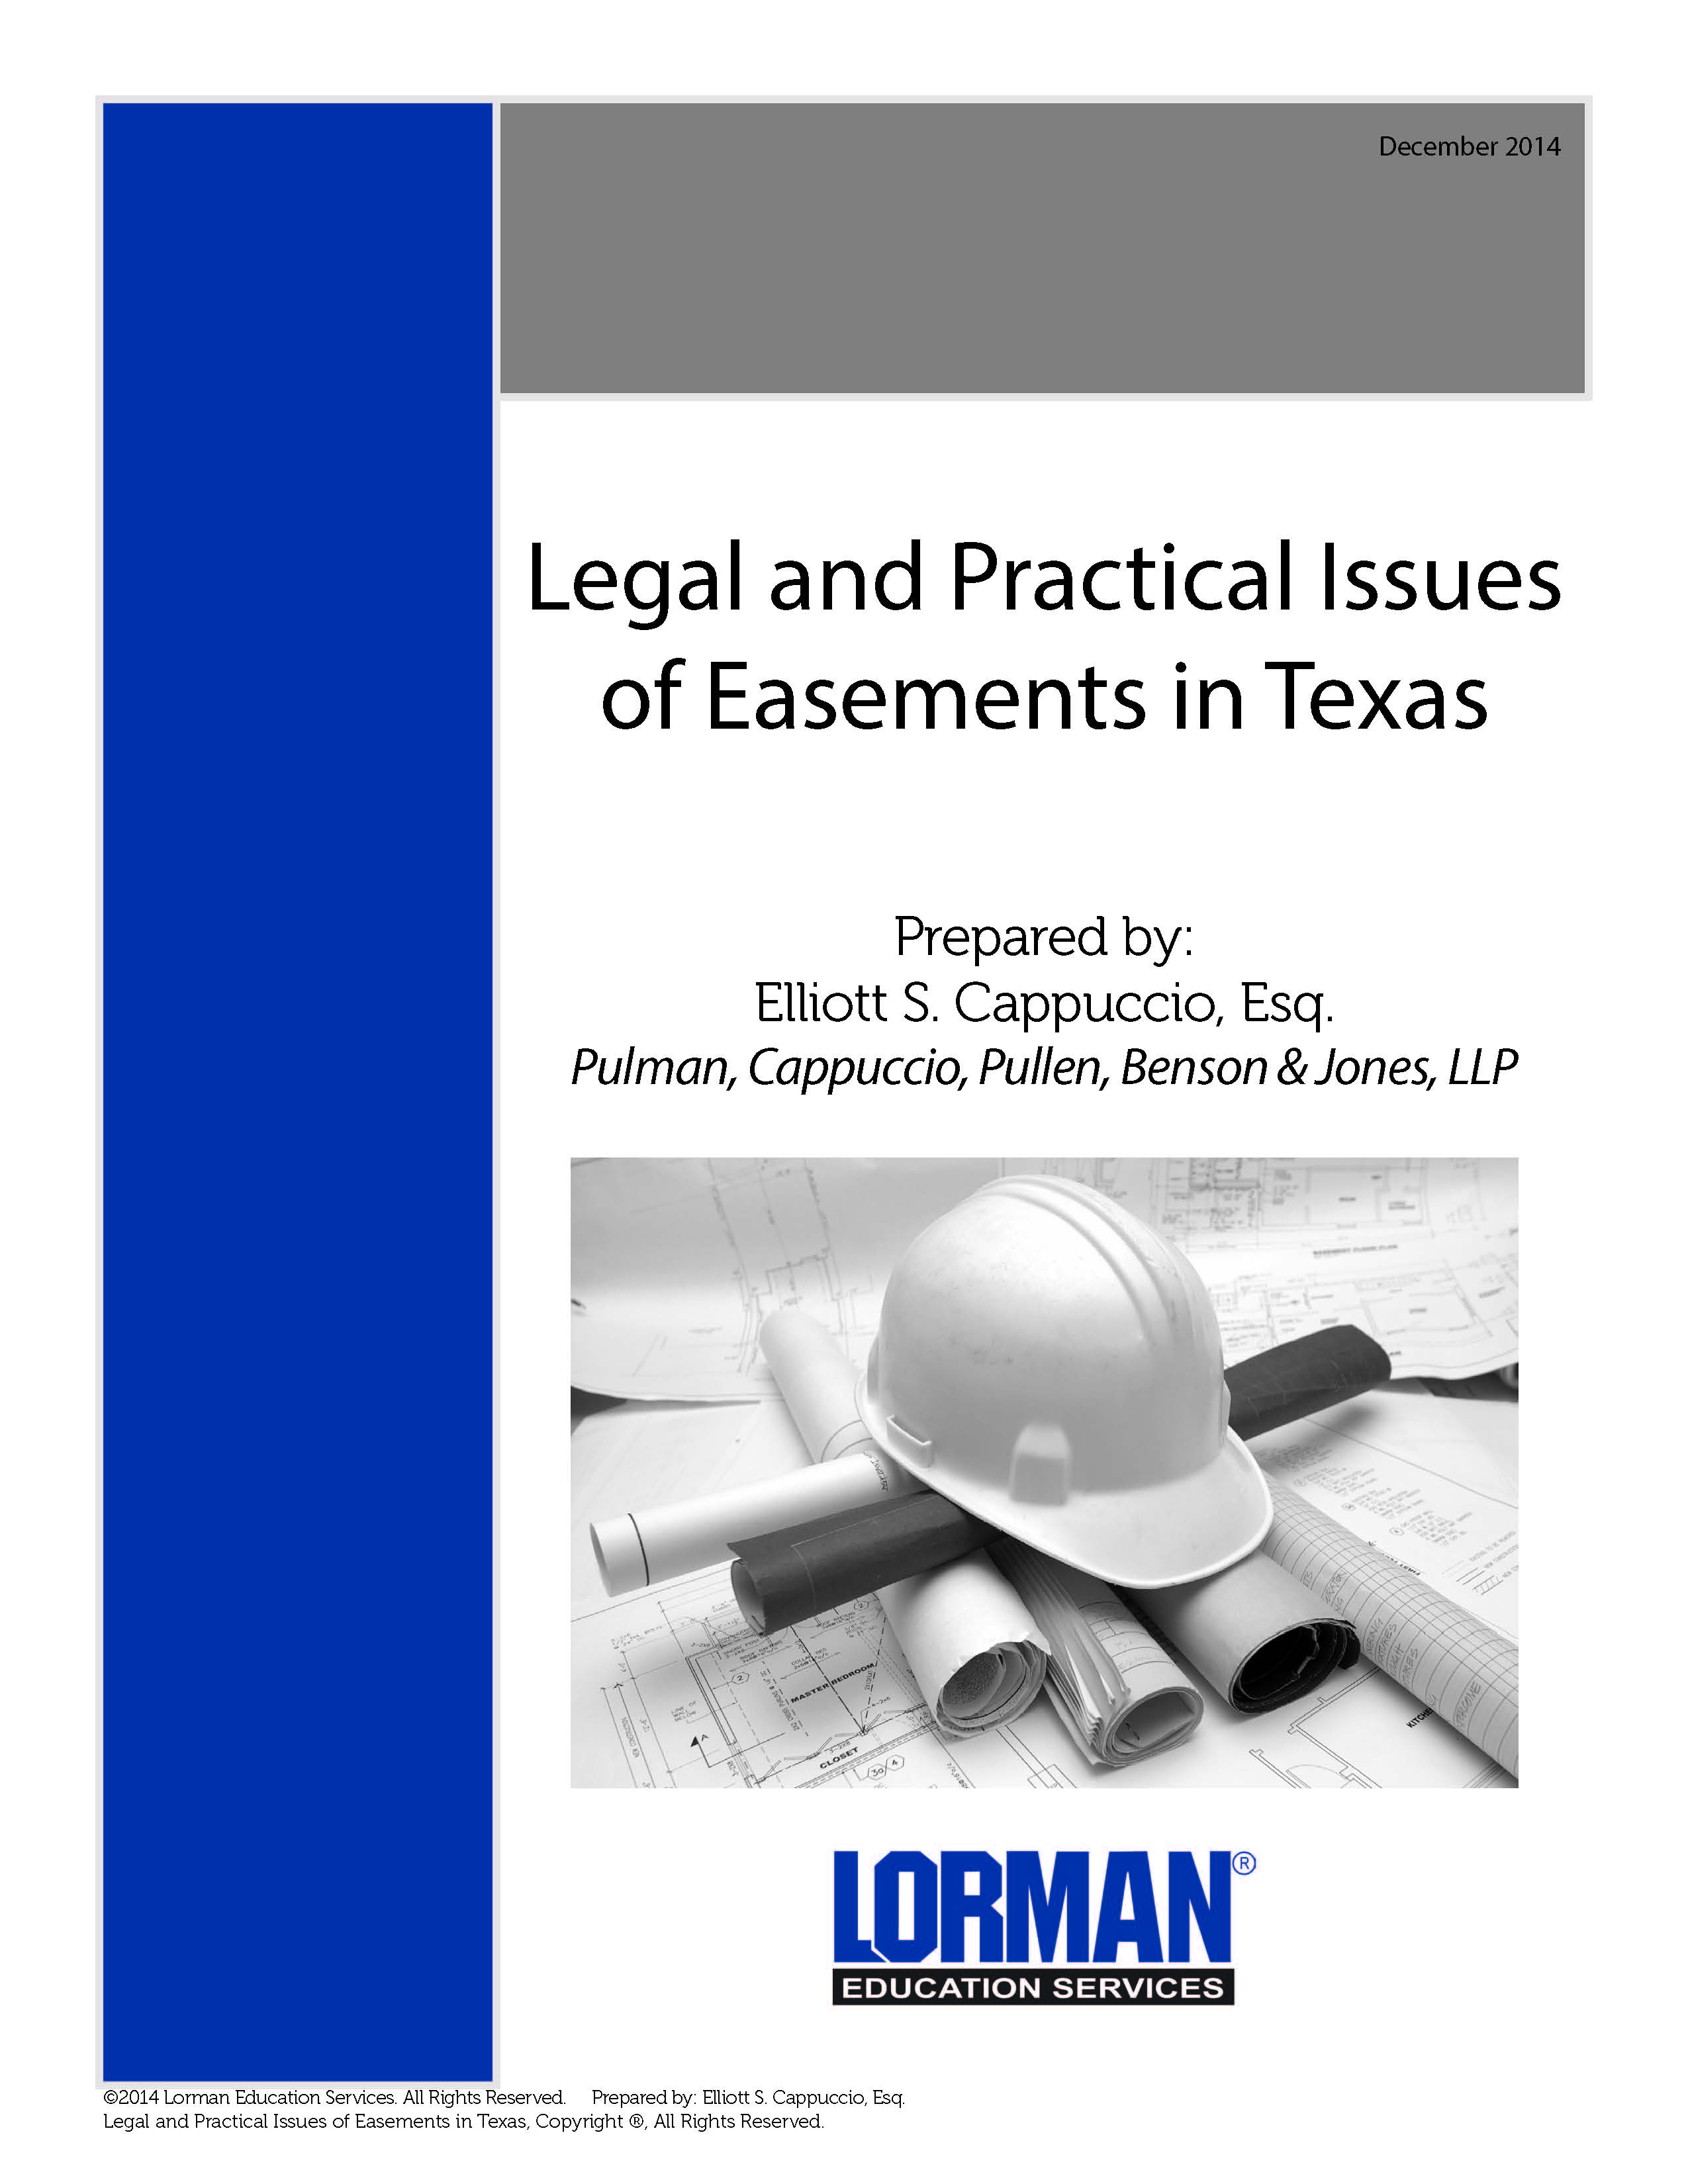 Legal and Practical Issues of Easements in Texas